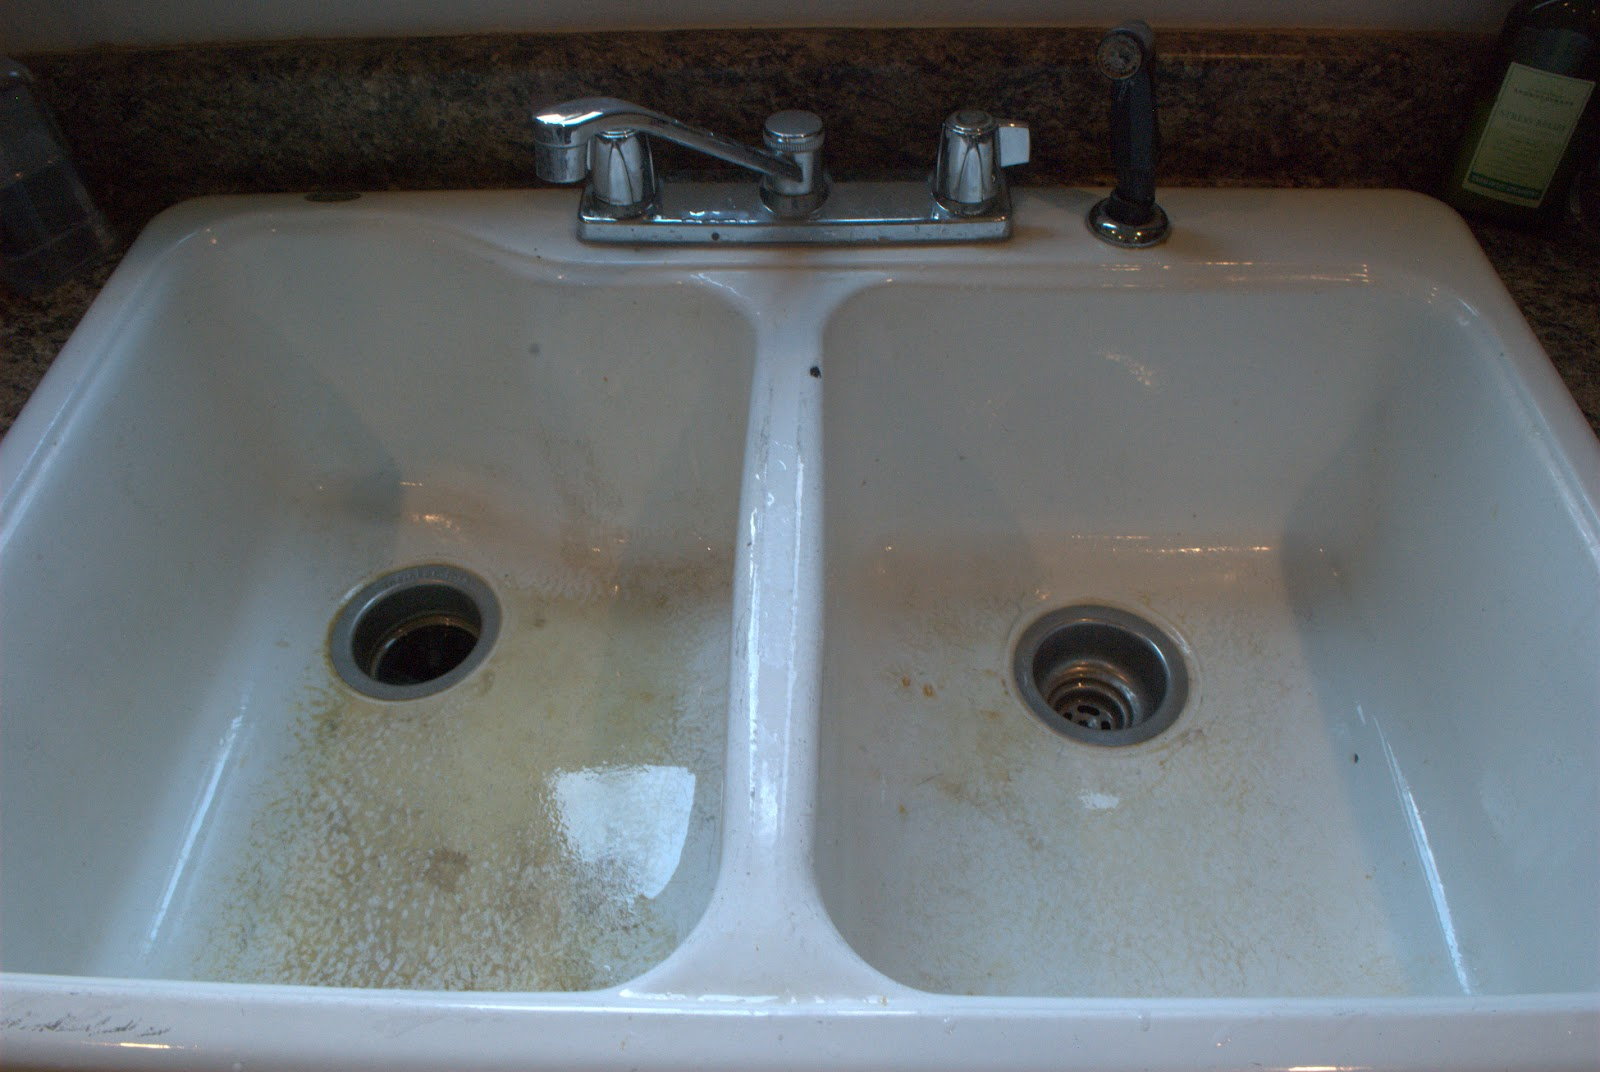 Ordinaire And Donu0027t Even Get Me Started On How Inconvenient It Is To Do Dishes With A  Faucet That Is Only 4 Inches Away From The Sink ...